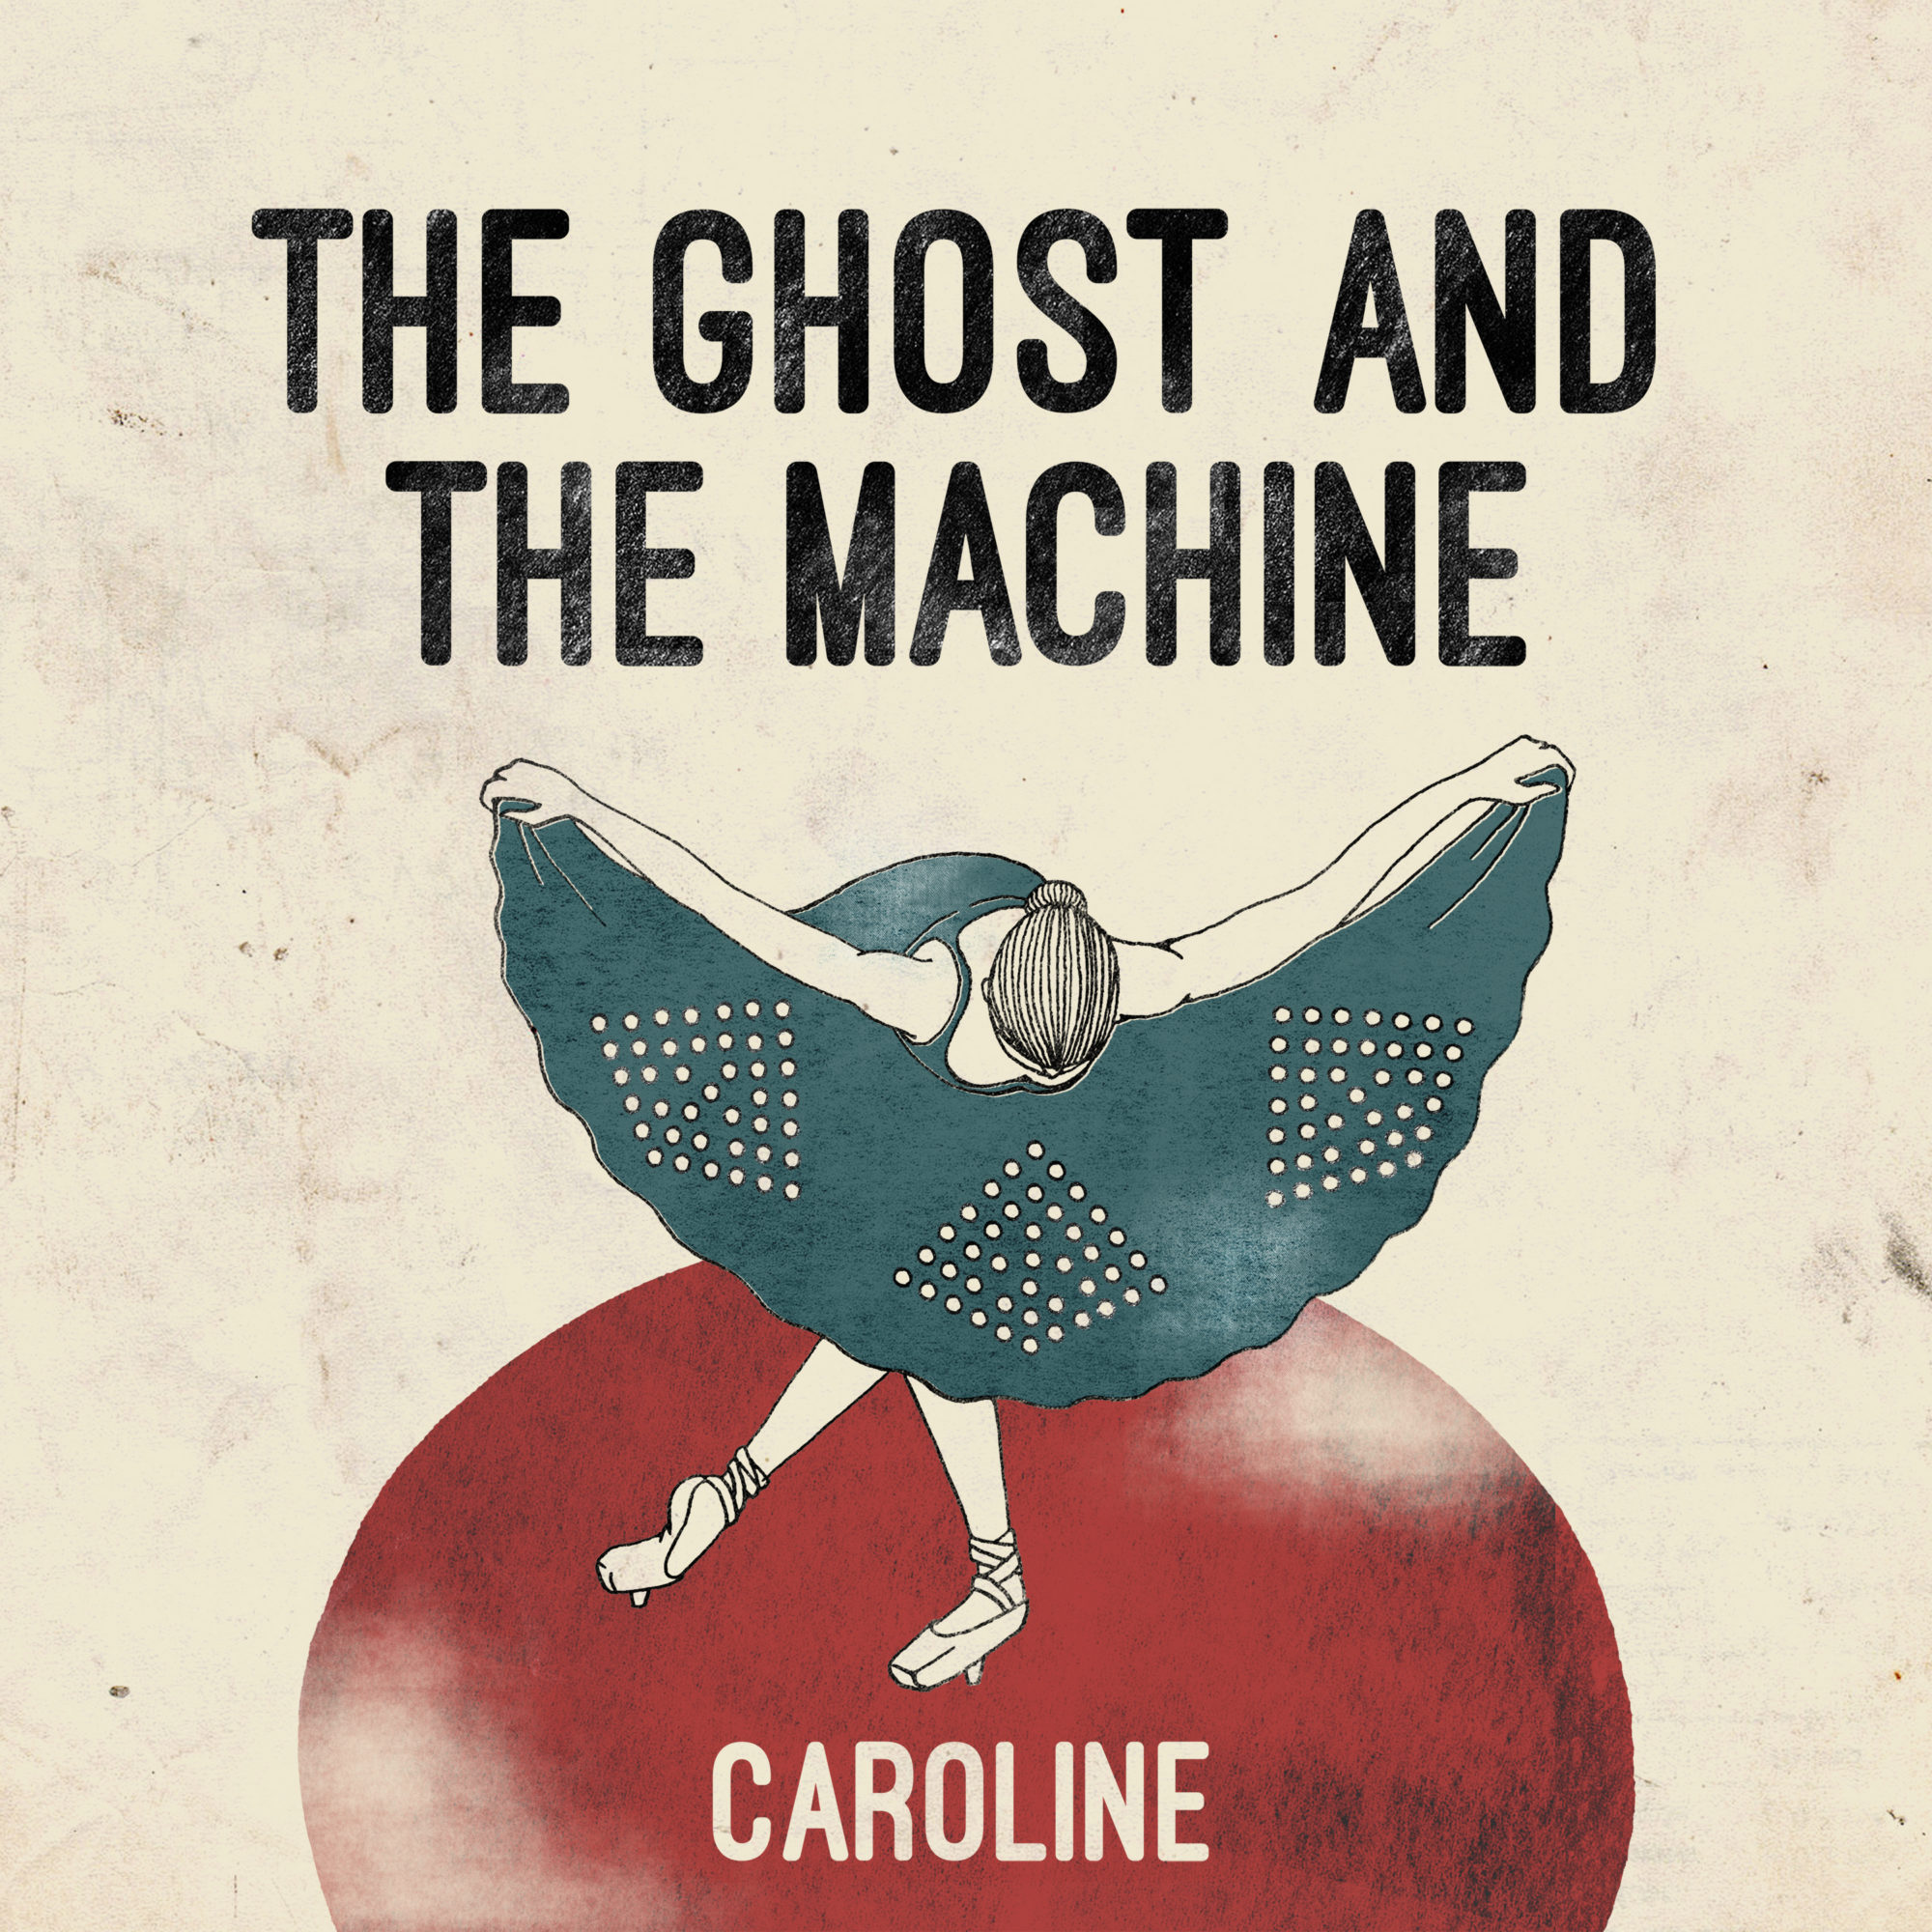 The Ghost and the Machine Band Caroline Single Artwork